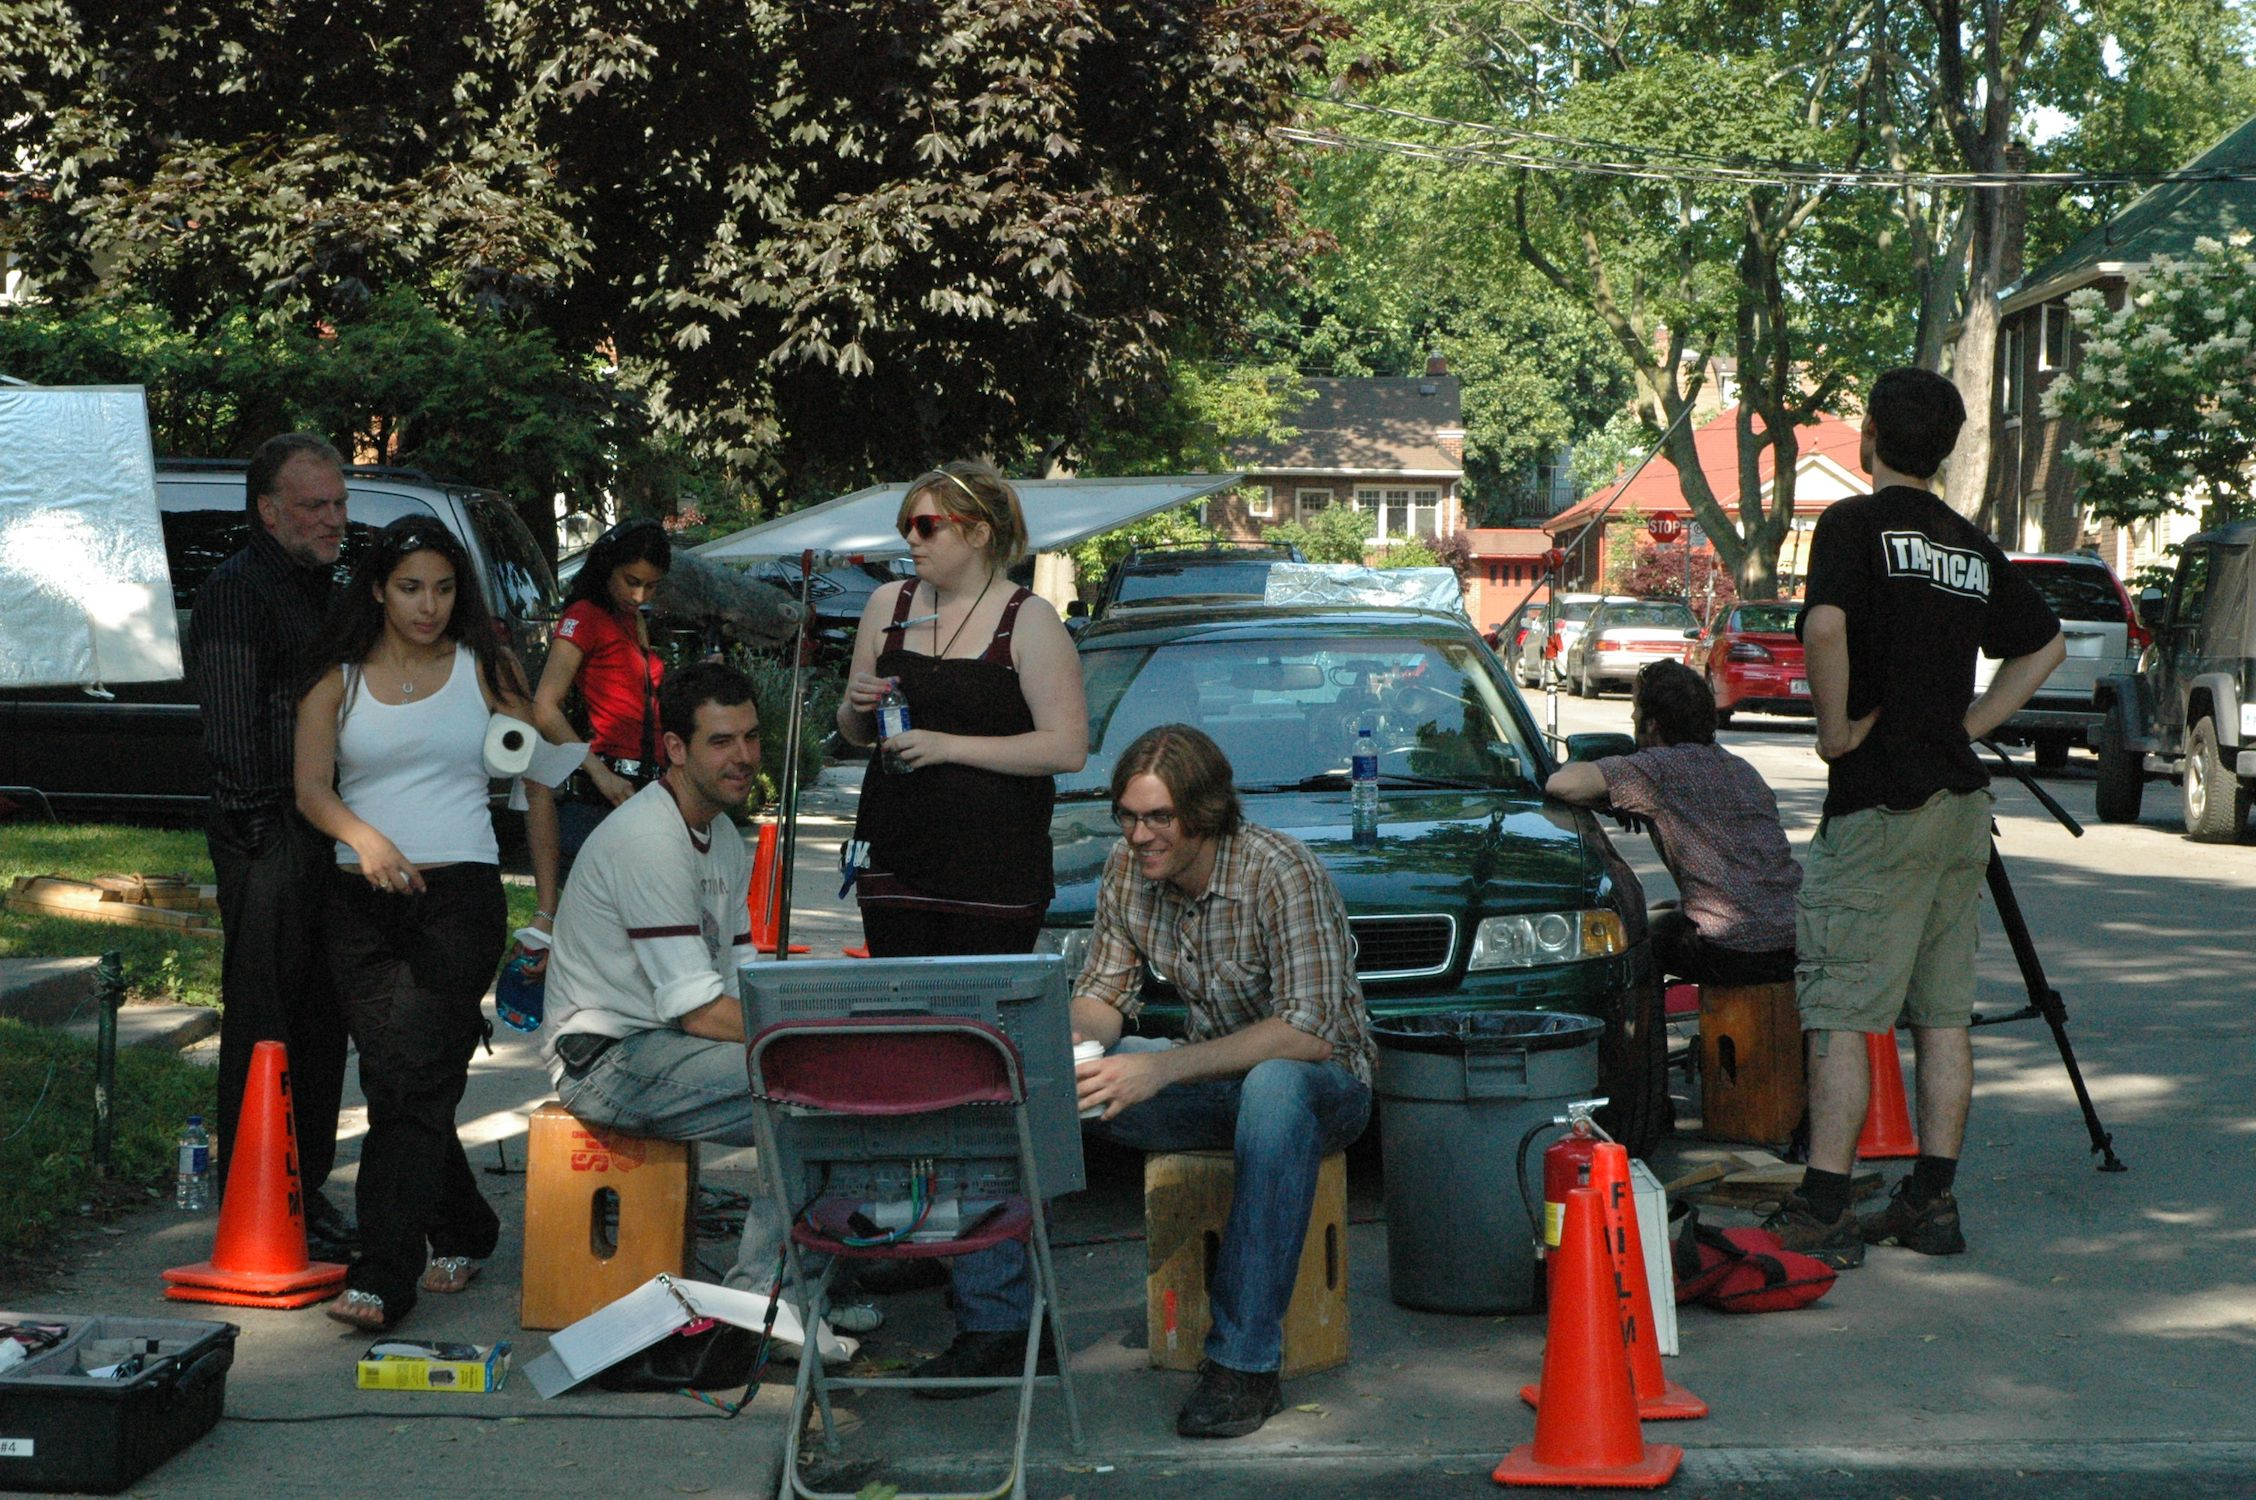 The crew set up for an interior car scene